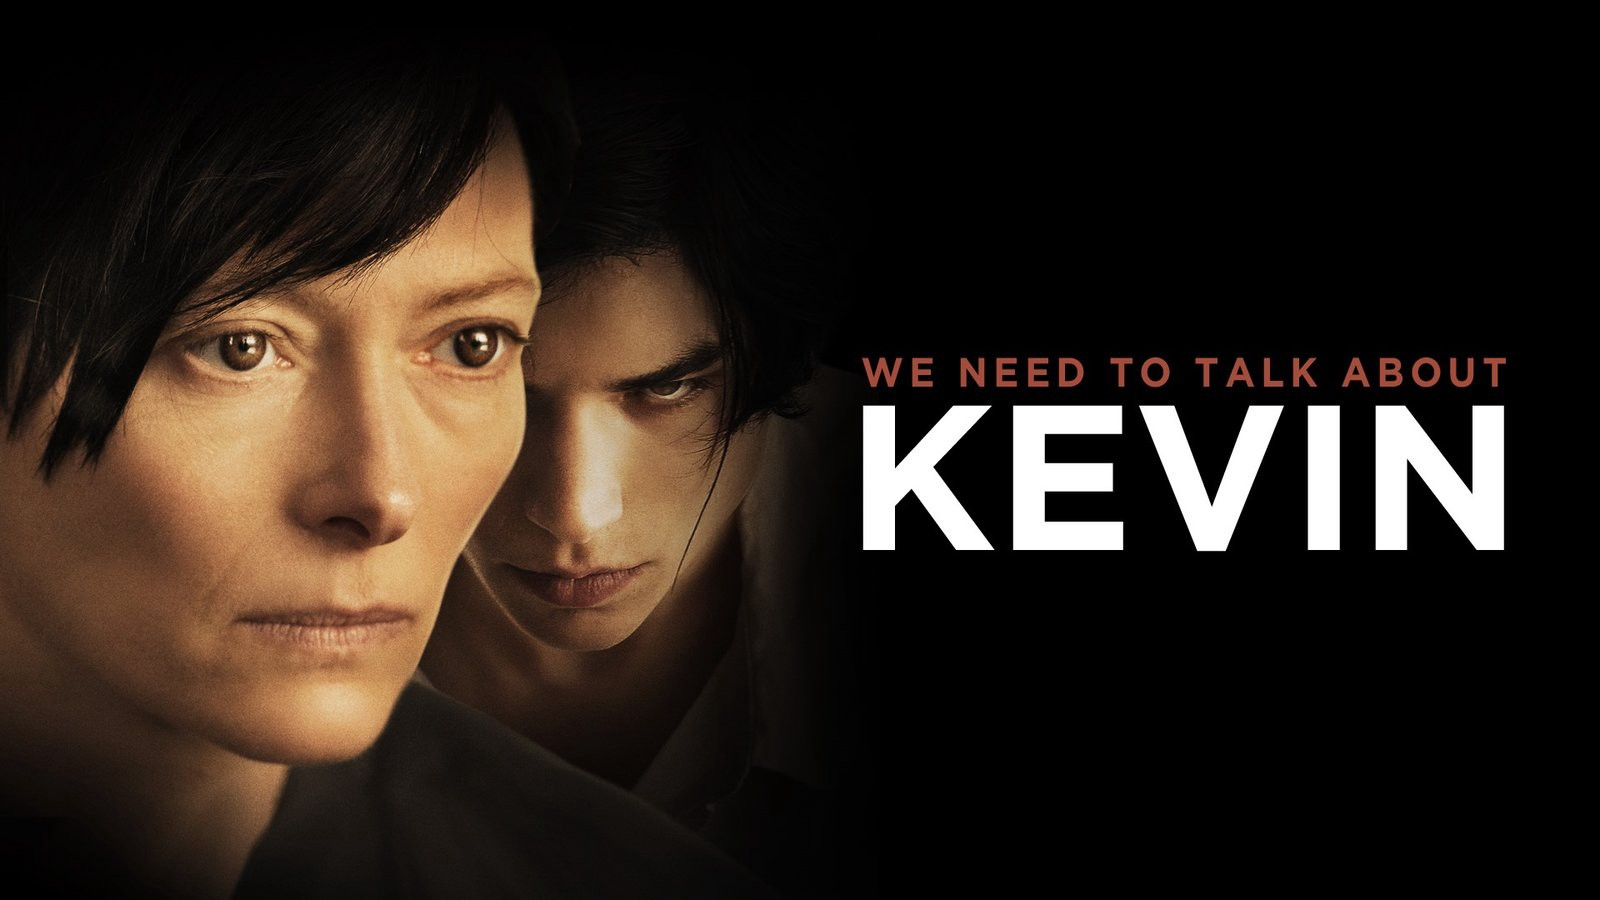 """We Analyze The Psychology of the Film """"We Need to Talk About Kevin"""" 